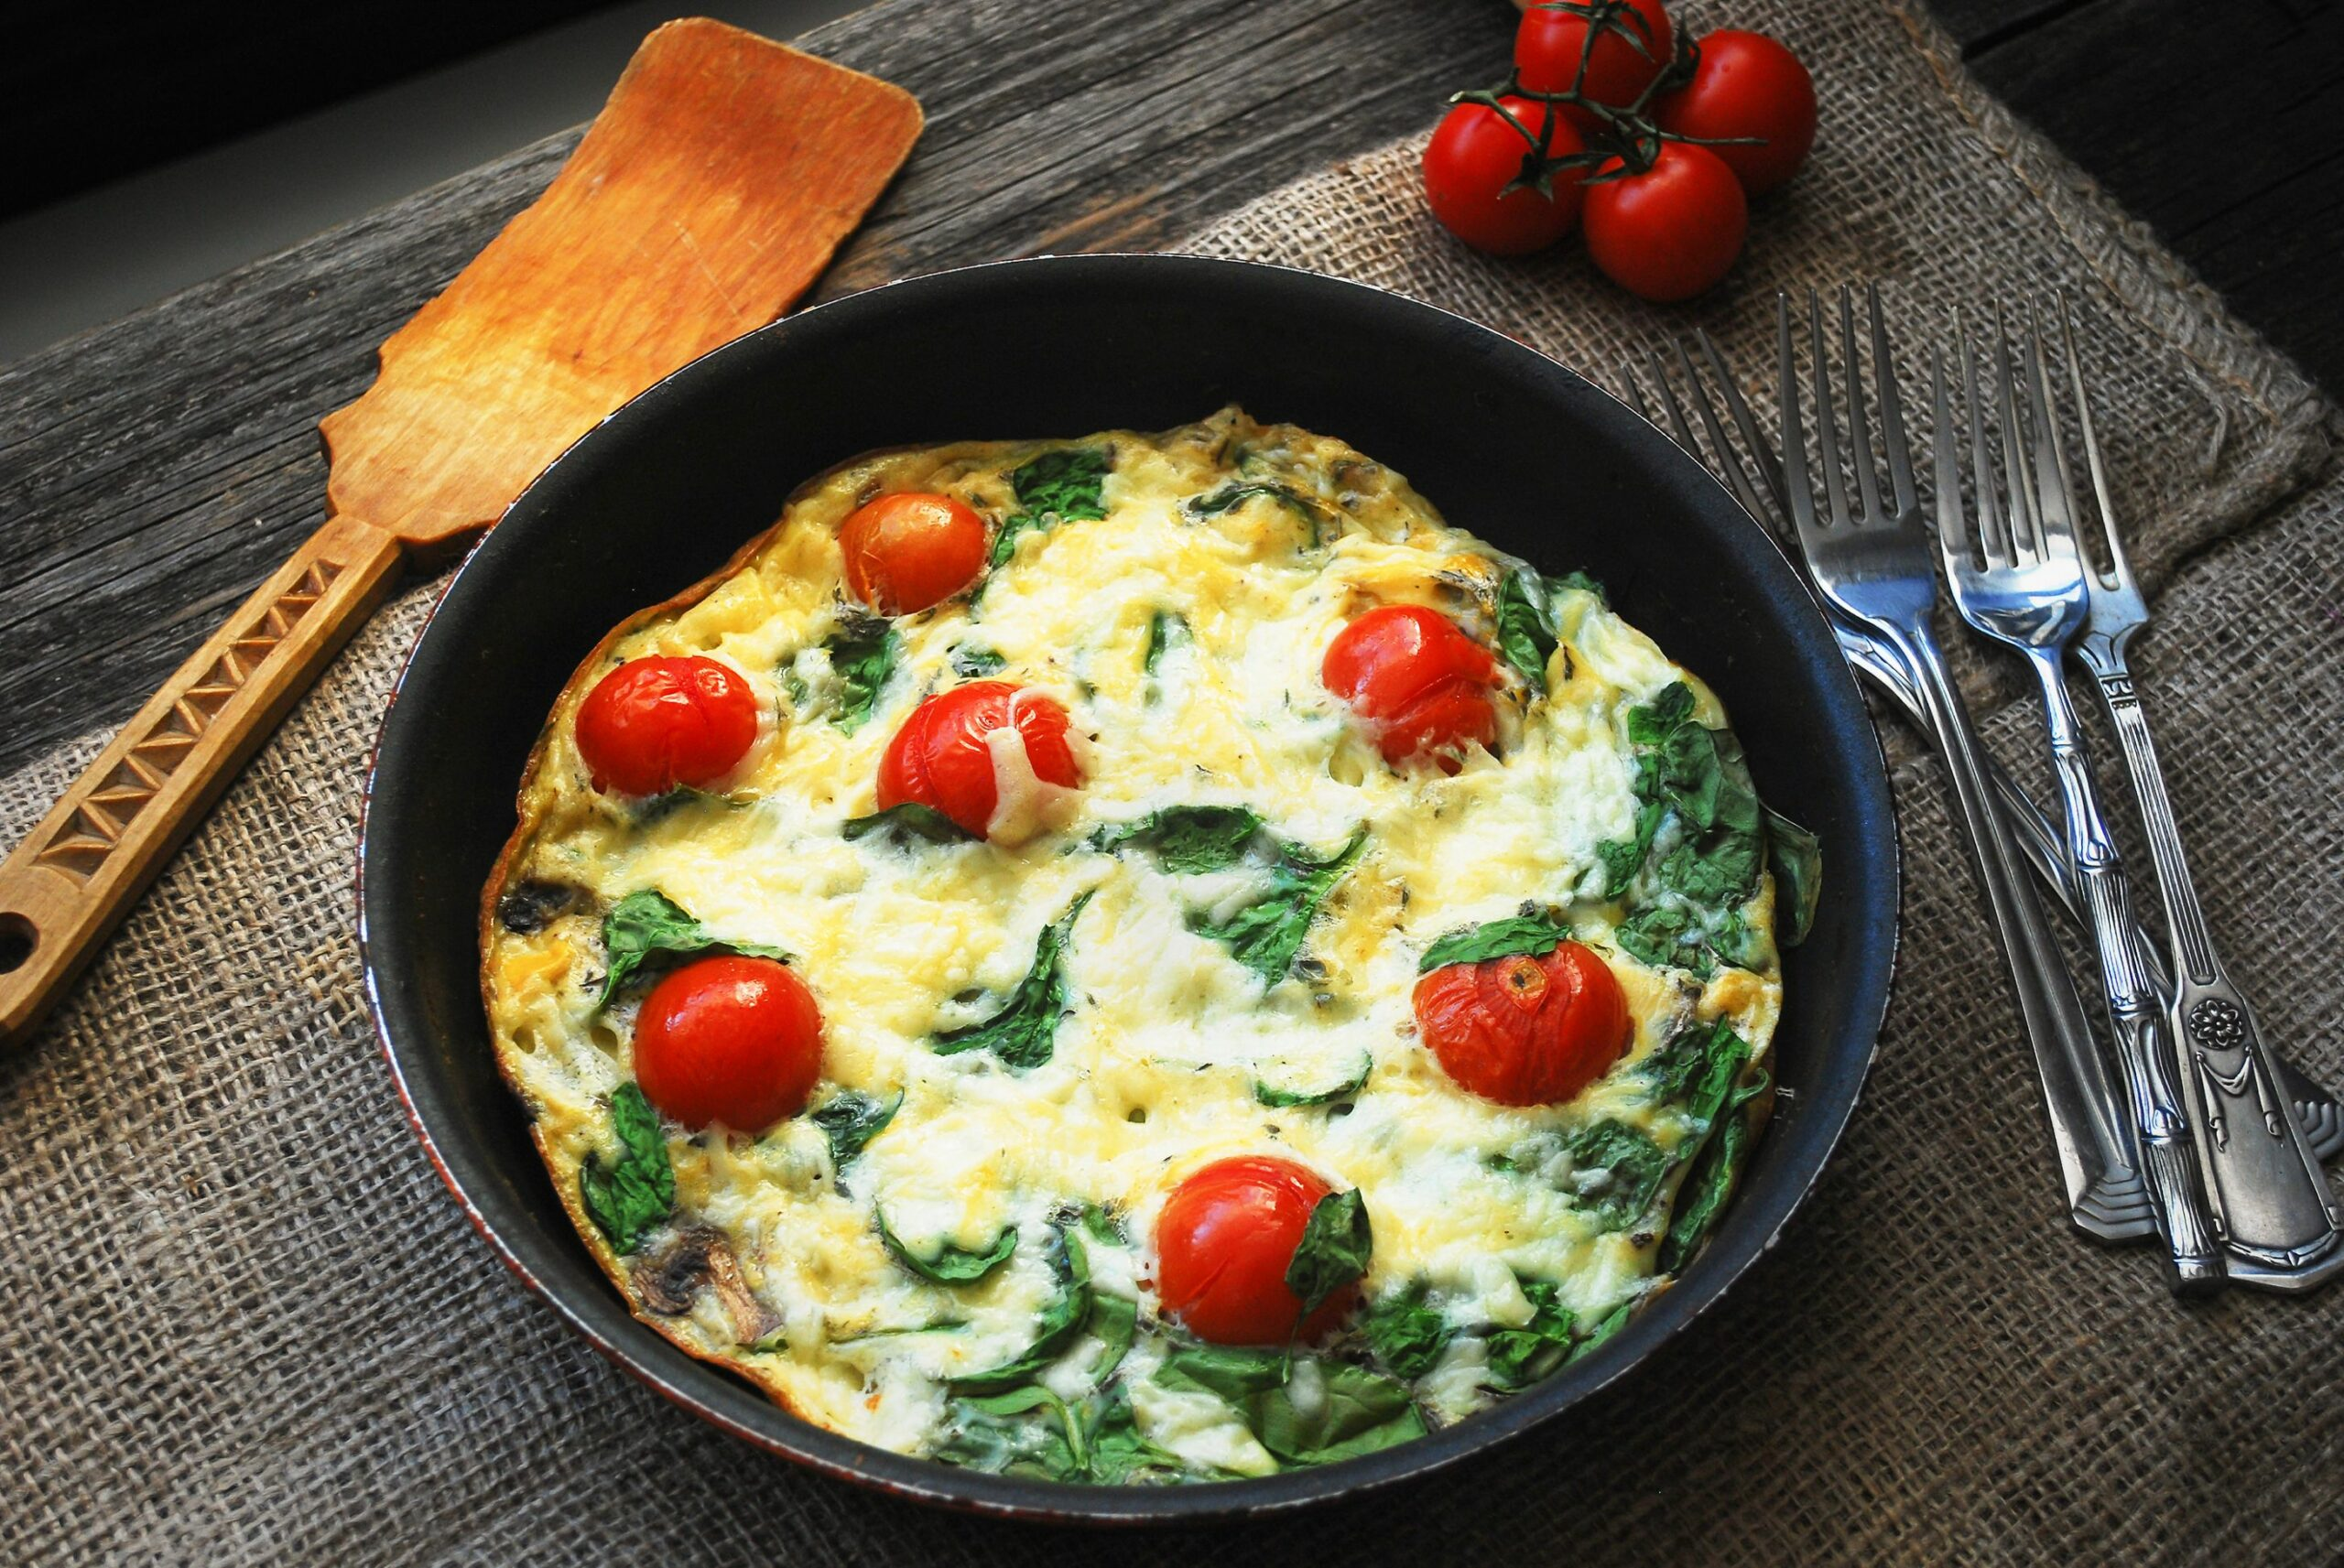 9 Quick Low Carb & High Protein Breakfast Recipes | Atkins - Breakfast Recipes No Carbs